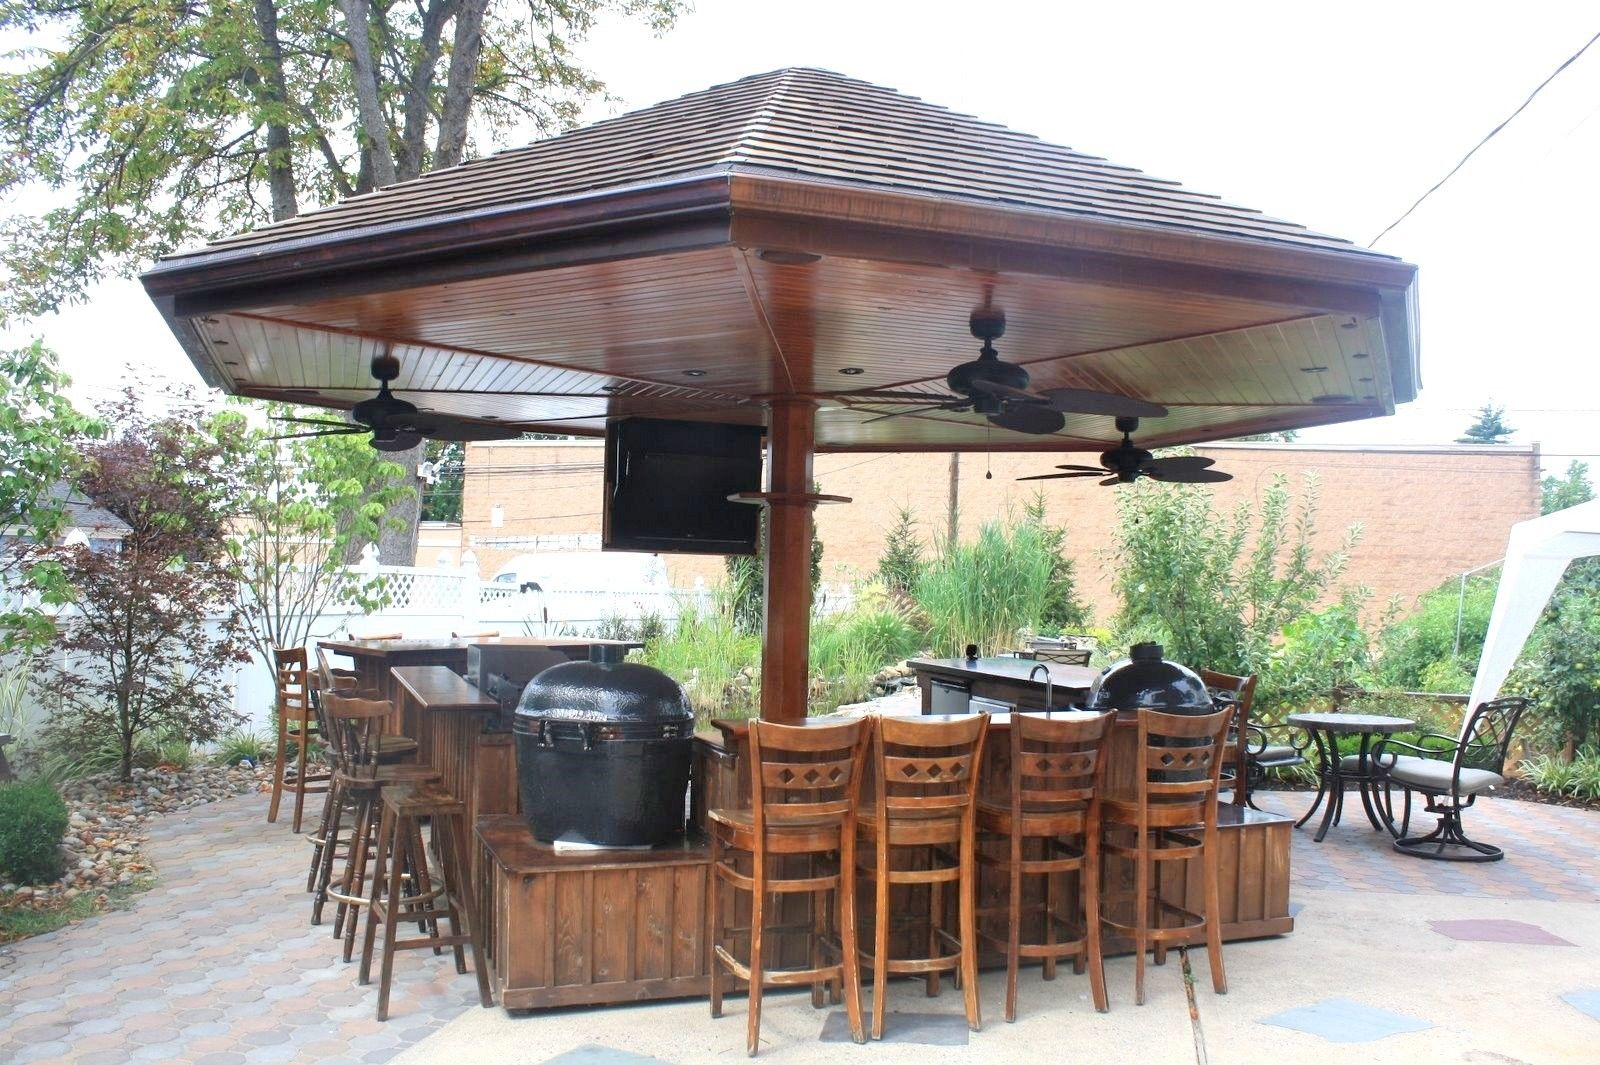 Handmade Primo Grill Outdoor Kitchen And Bar by Deck